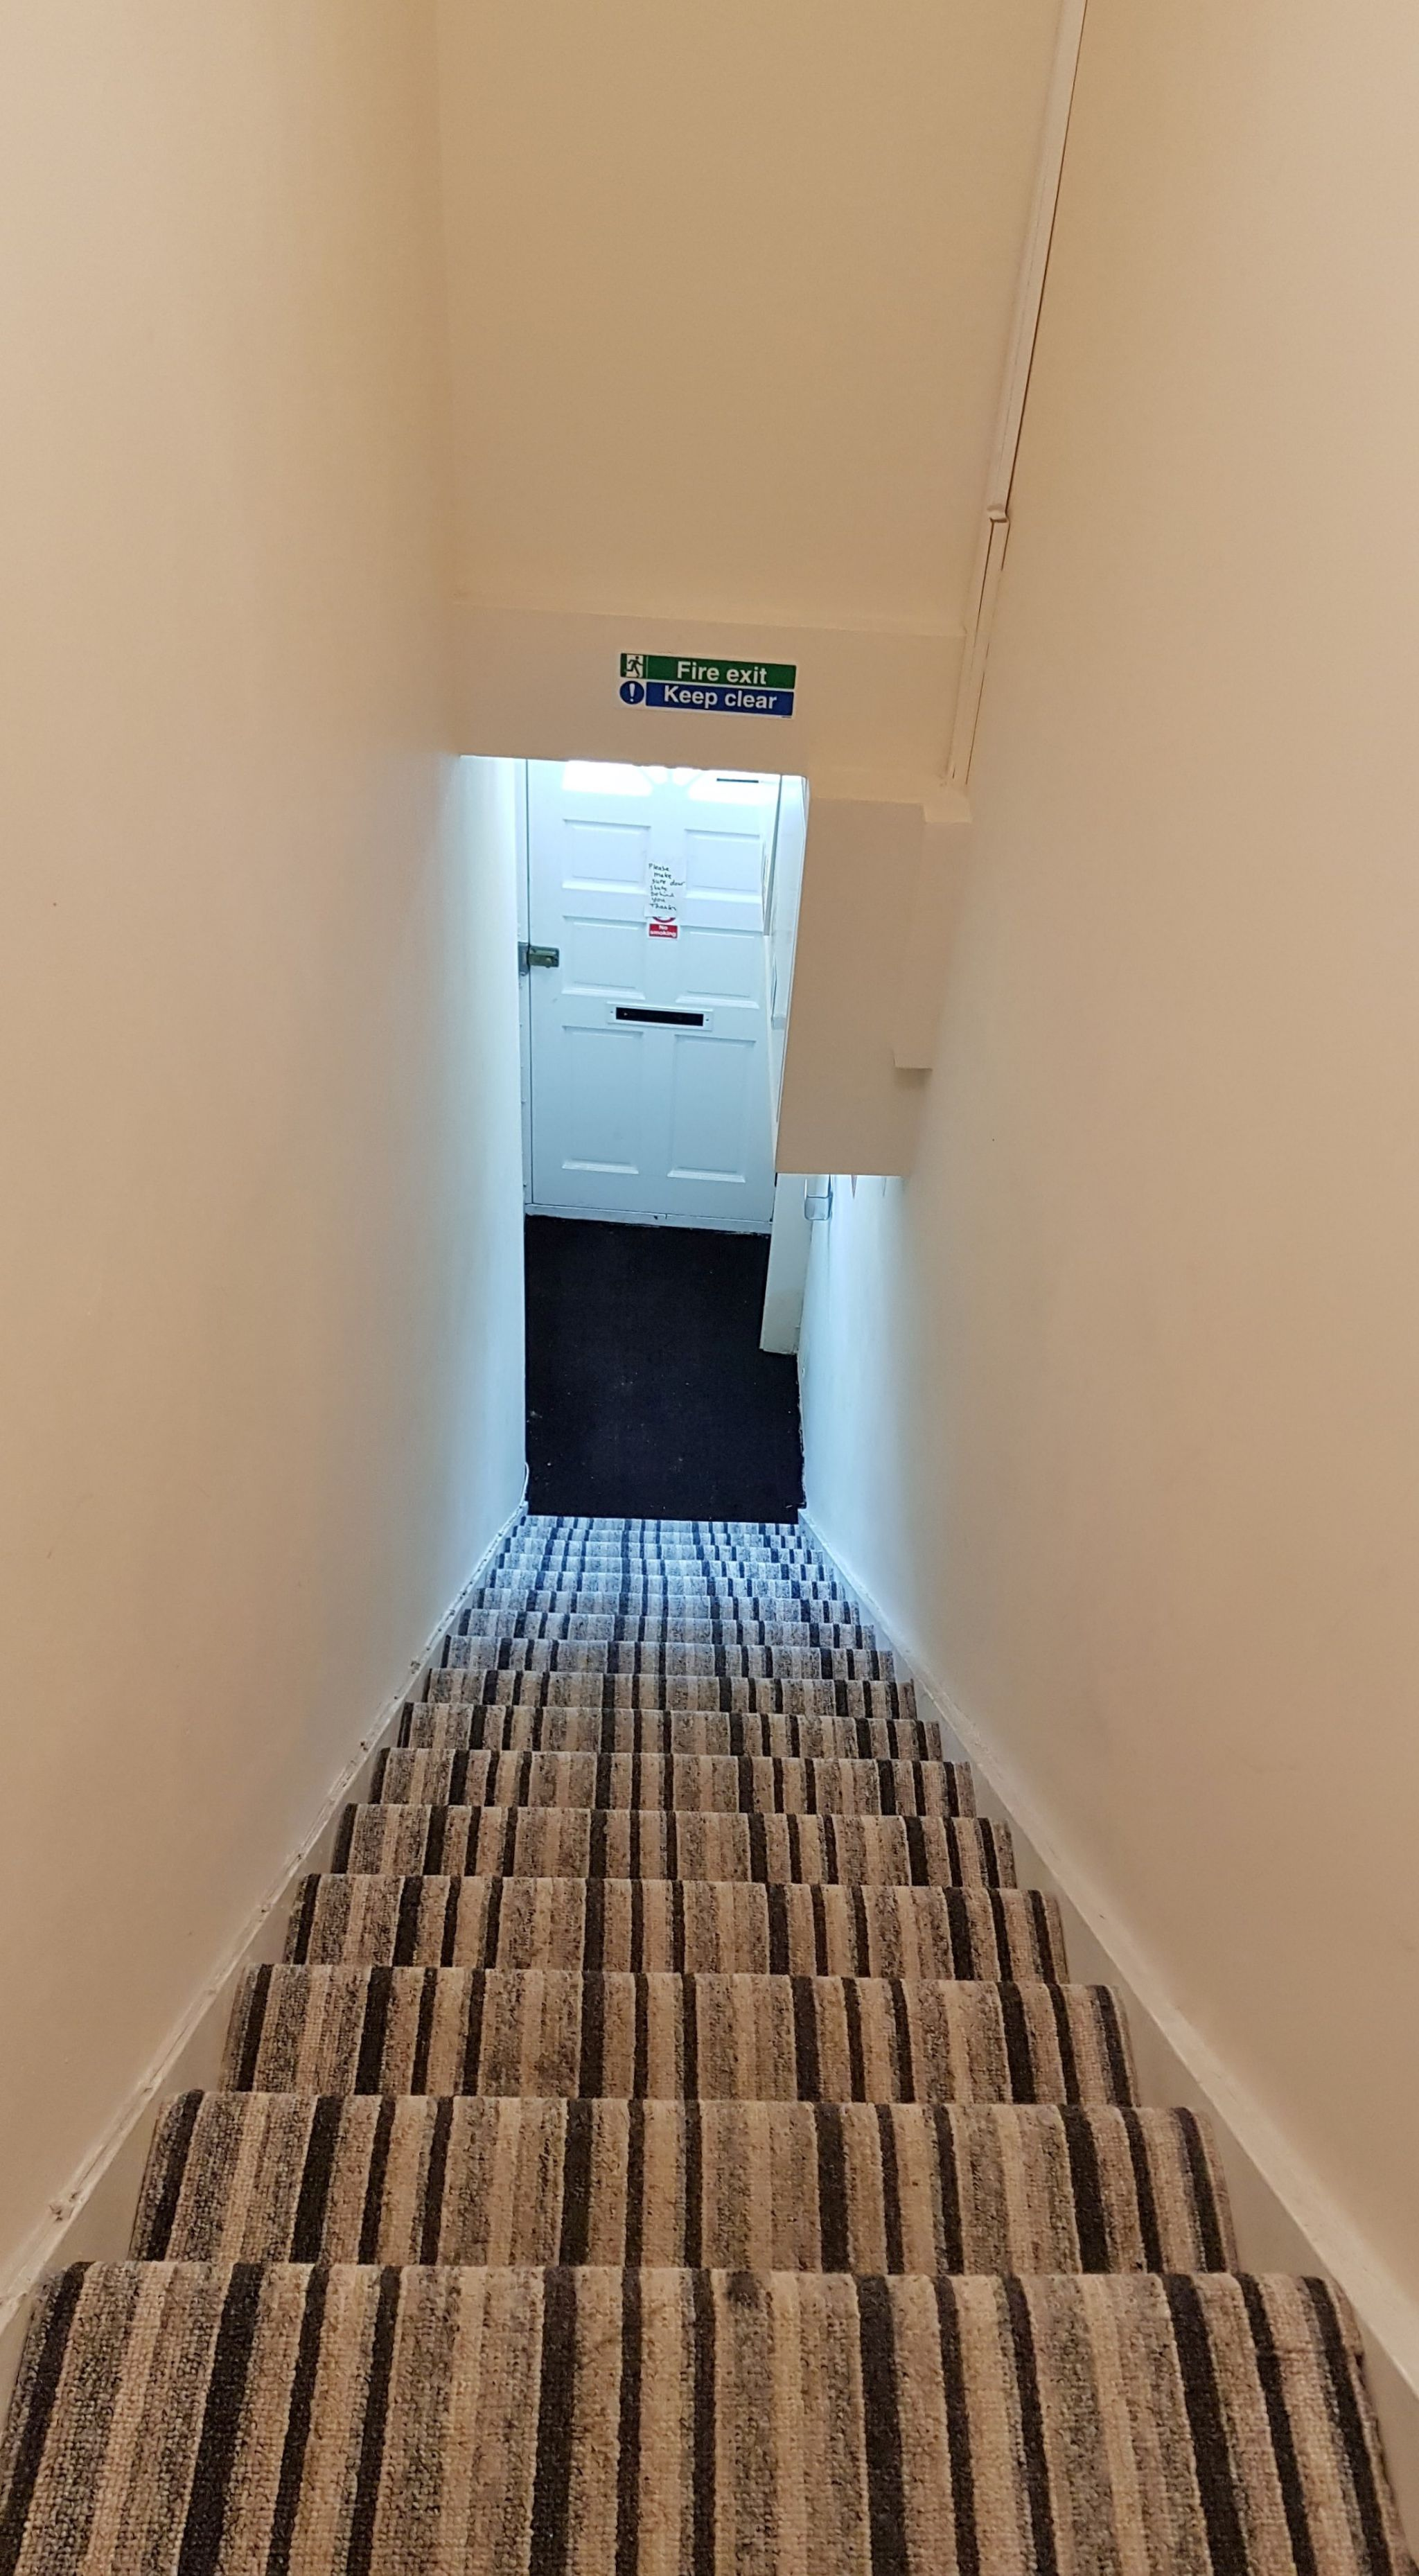 1 bedroom studio flat/apartment Under Offer in Willesden Green - Staircase/Entrance